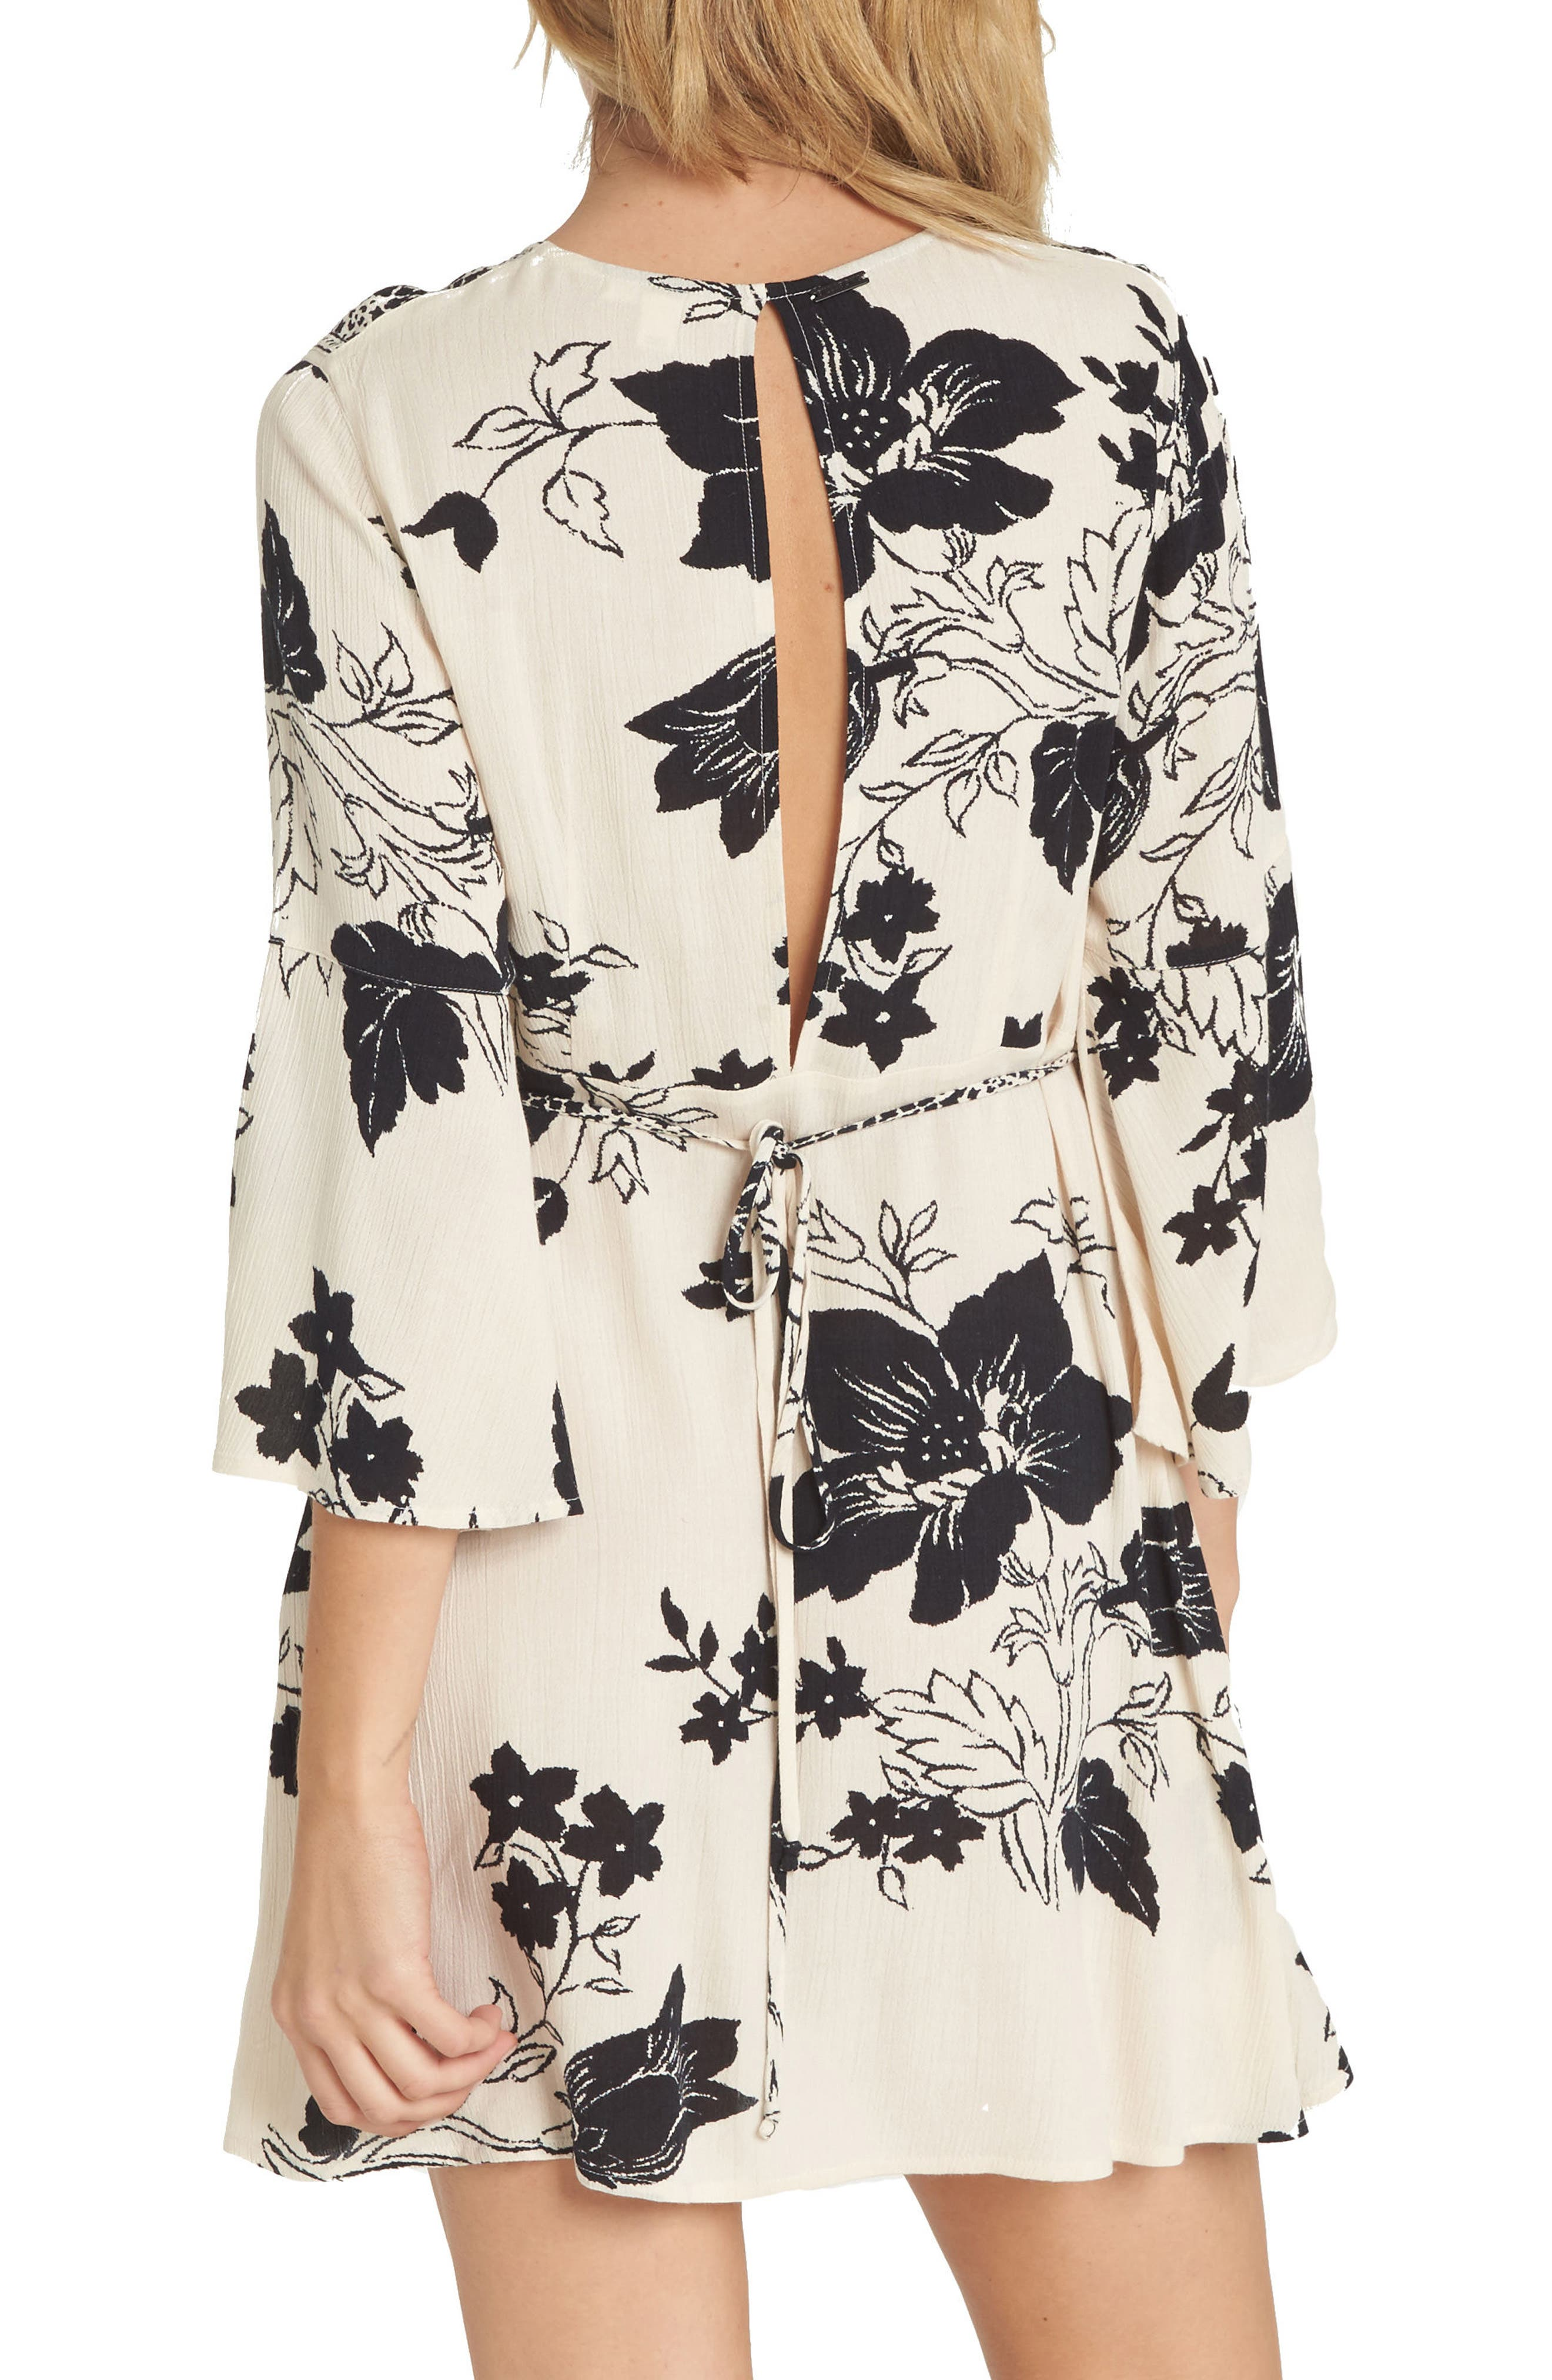 Divine Floral Print Dress,                             Alternate thumbnail 2, color,                             900